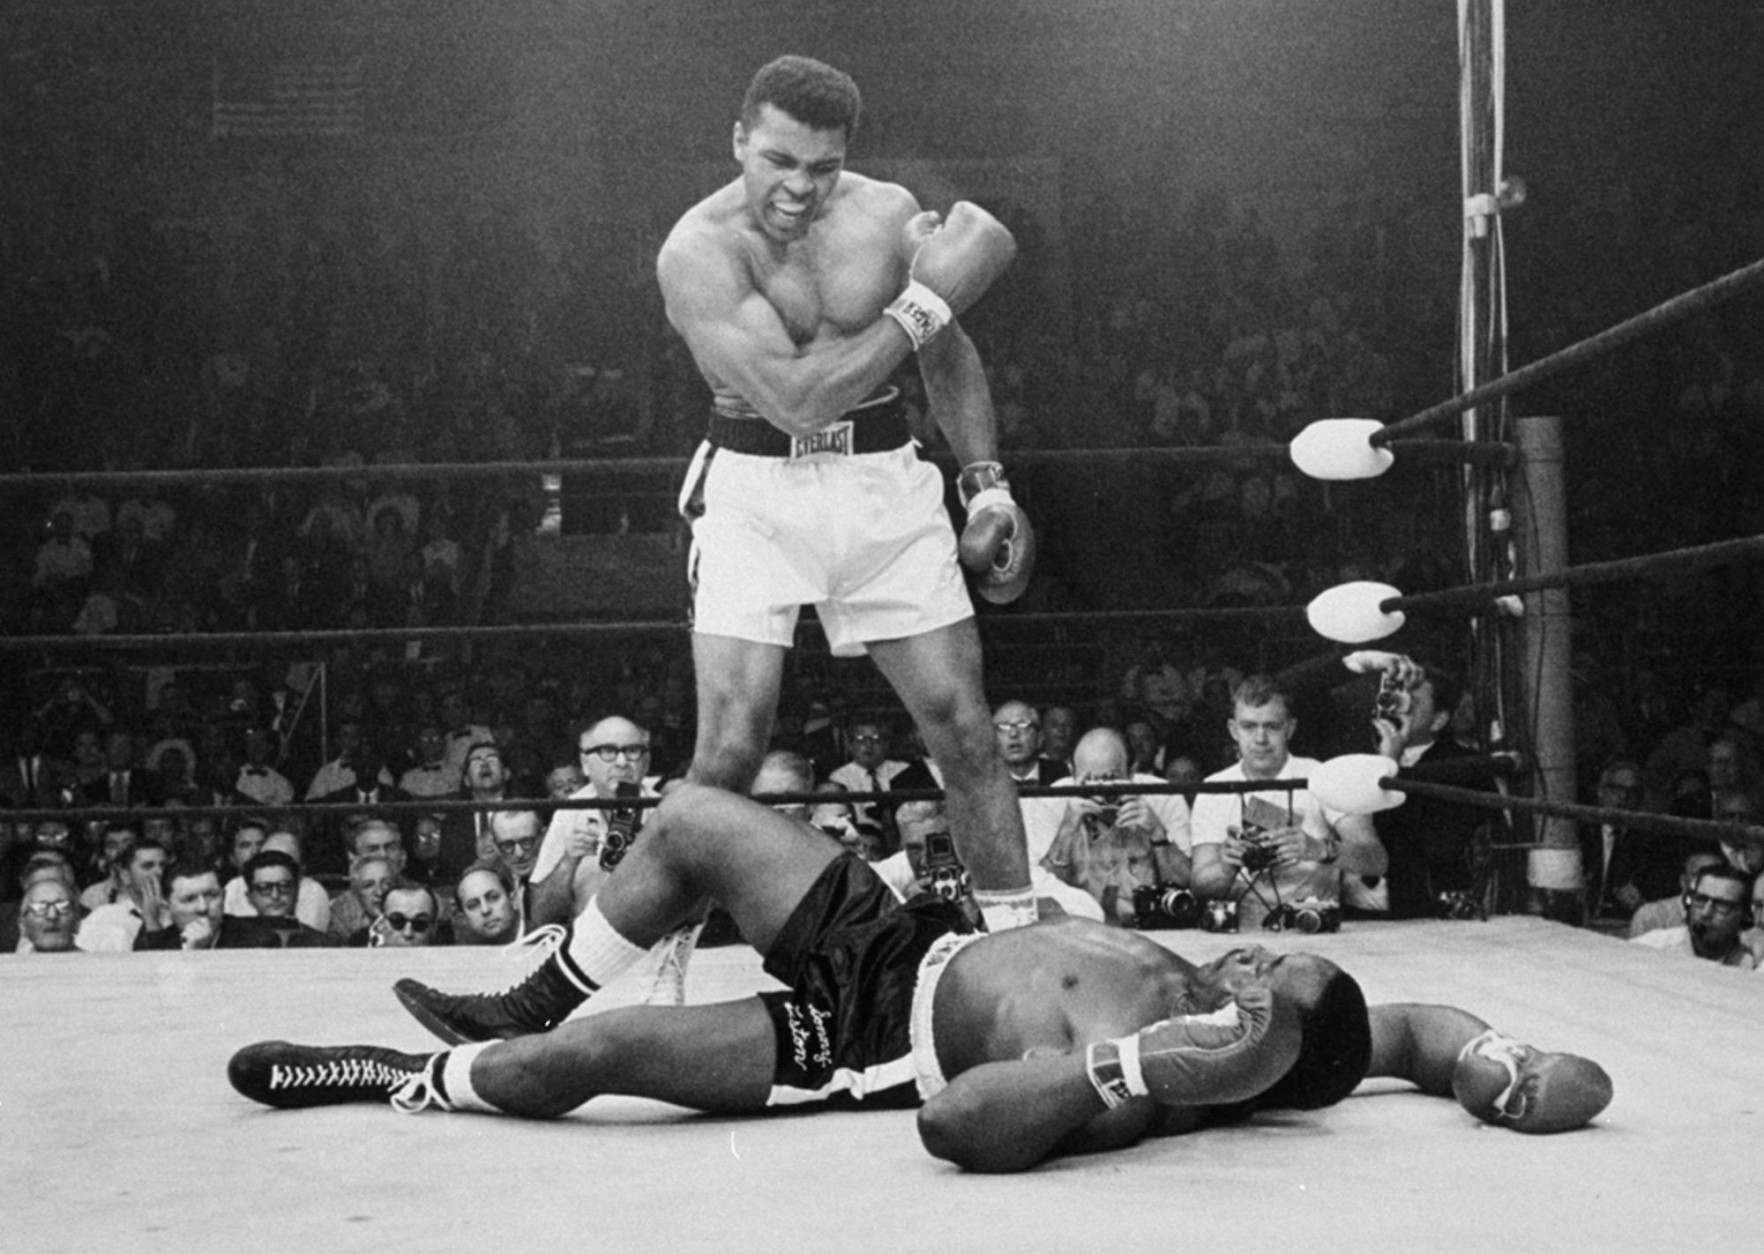 FILE - In this May 25, 1965, file photo, heavyweight champion Muhammad Ali, then known as Cassius Clay, stands over challenger Sonny Liston, shouting and gesturing shortly after dropping Liston with a short hard right to the jaw, in Lewiston, Maine. Ali, the magnificent heavyweight champion whose fast fists and irrepressible personality transcended sports and captivated the world, has died according to a statement released by his family Friday, June 3, 2016. He was 74.  (AP Photo/John Rooney, File)